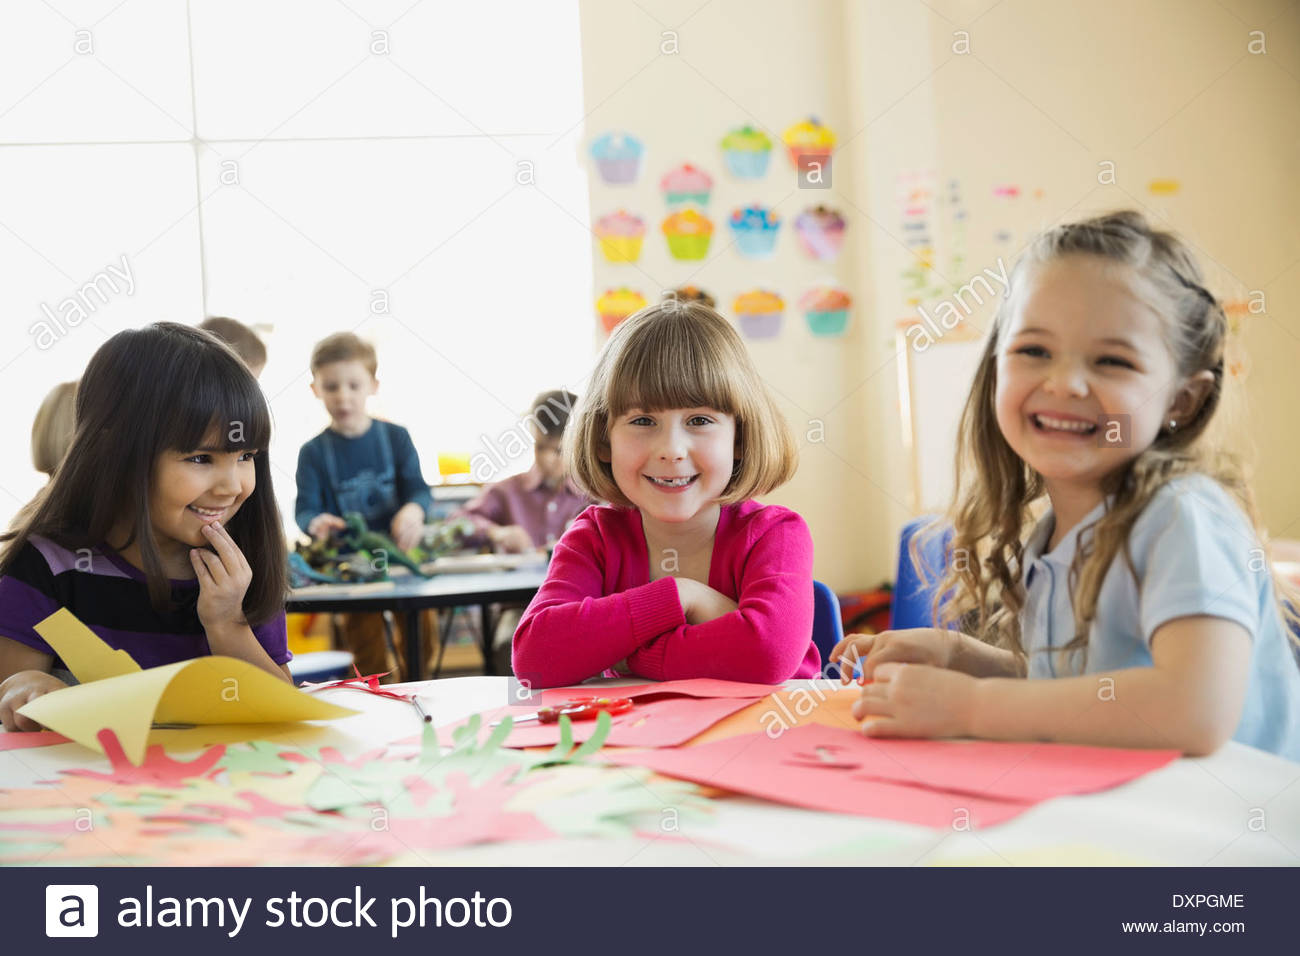 Smiling girls sitting at table in elementary class - Stock Image